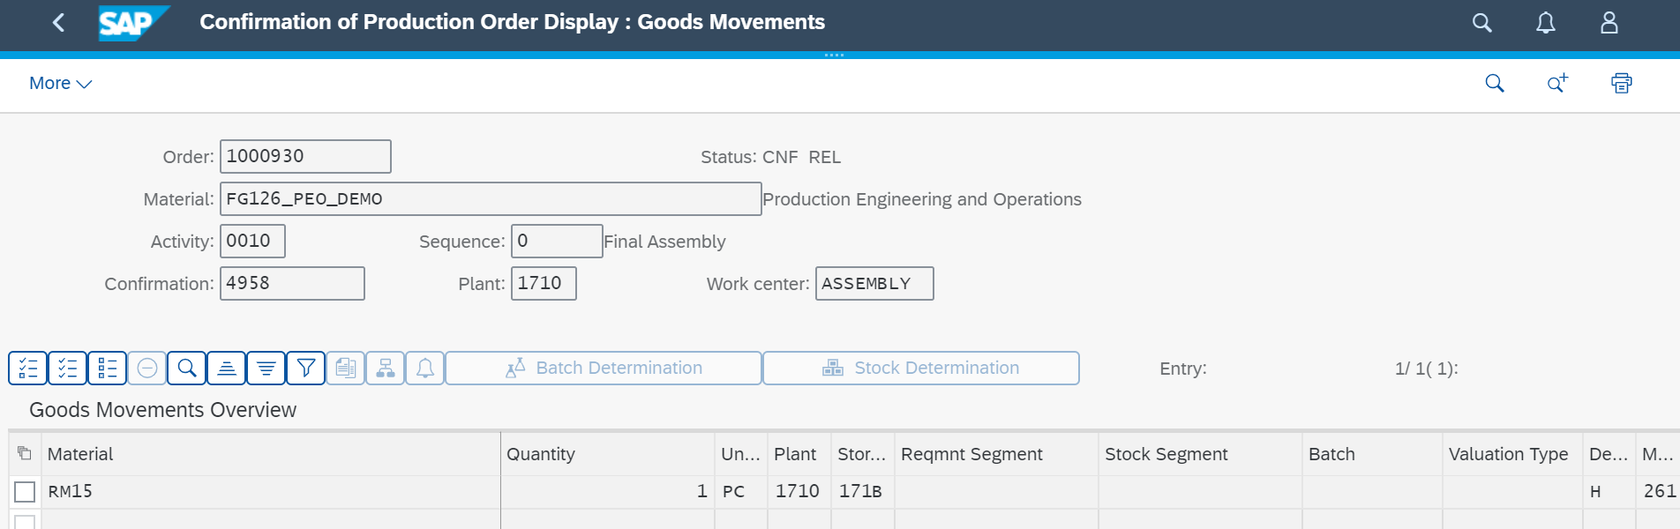 New Output Management for S/4 system. Purchase_Order, Sales_Order.(Print & IDOC)